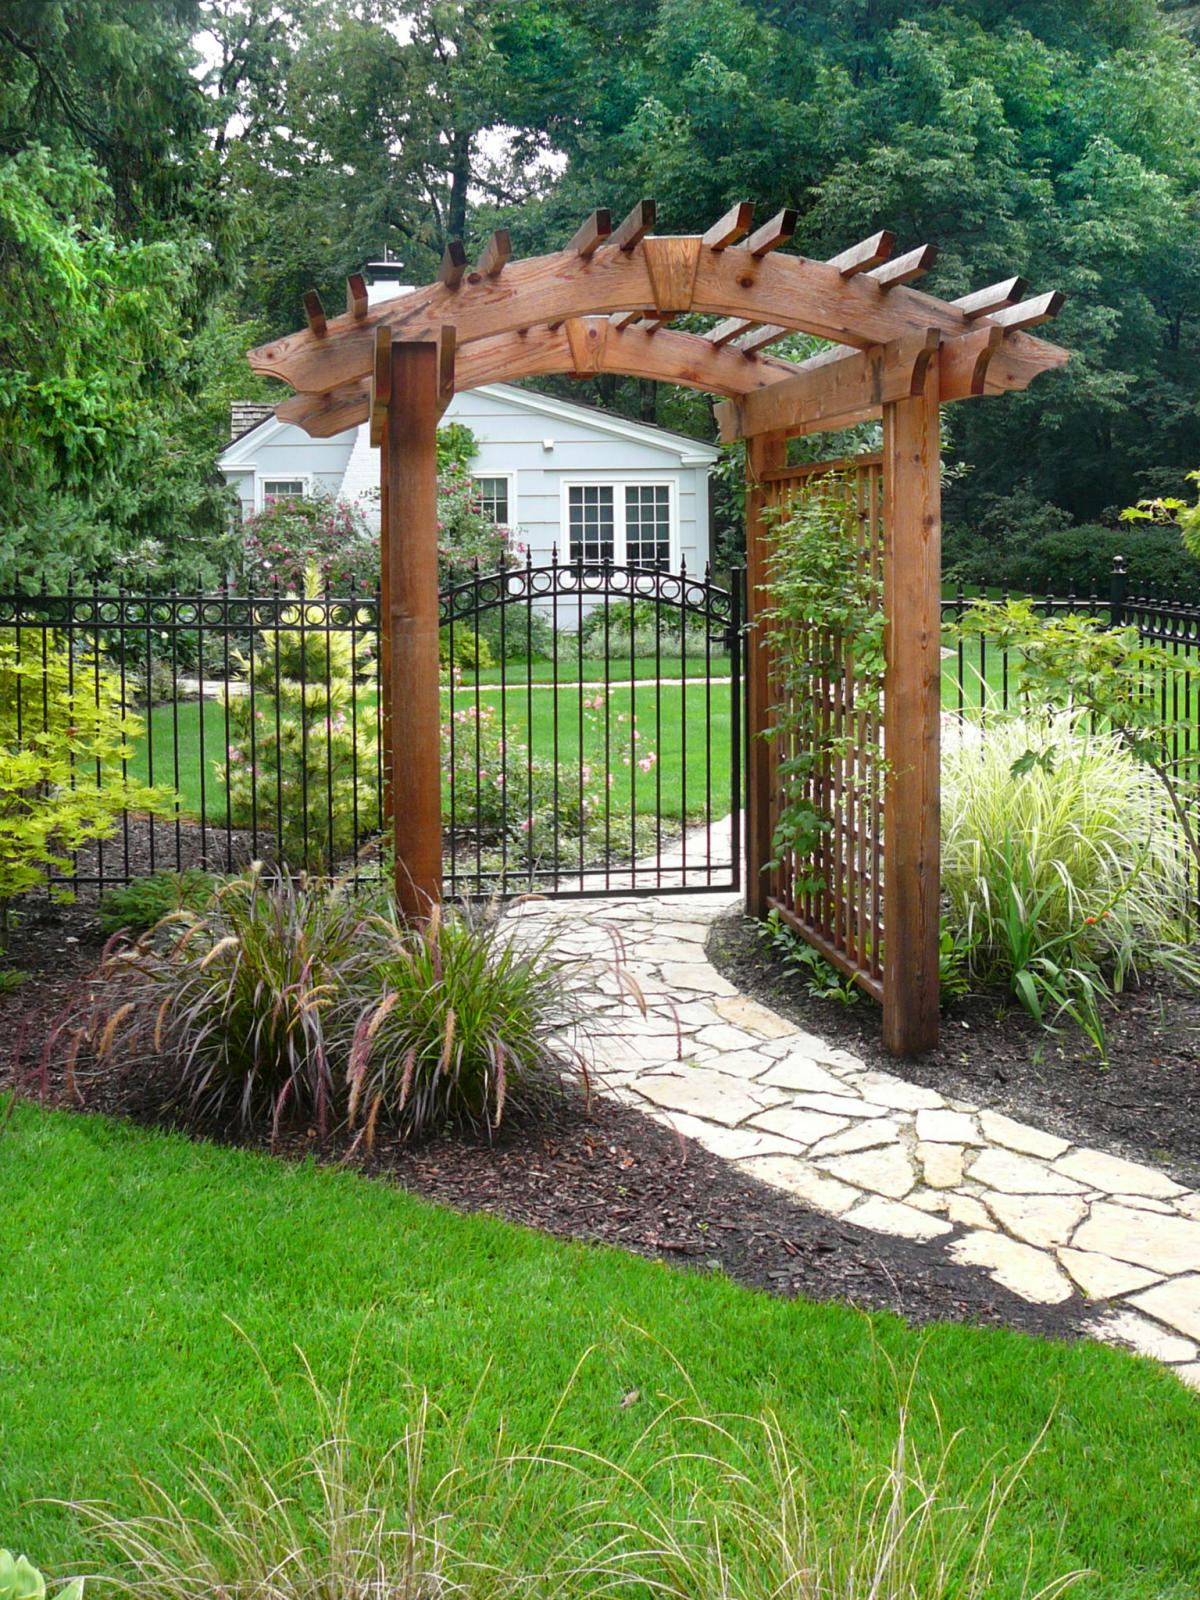 Custom Cedar Trellis And Pergola Designed, Constructed And Installation By  Stonewood Design Group